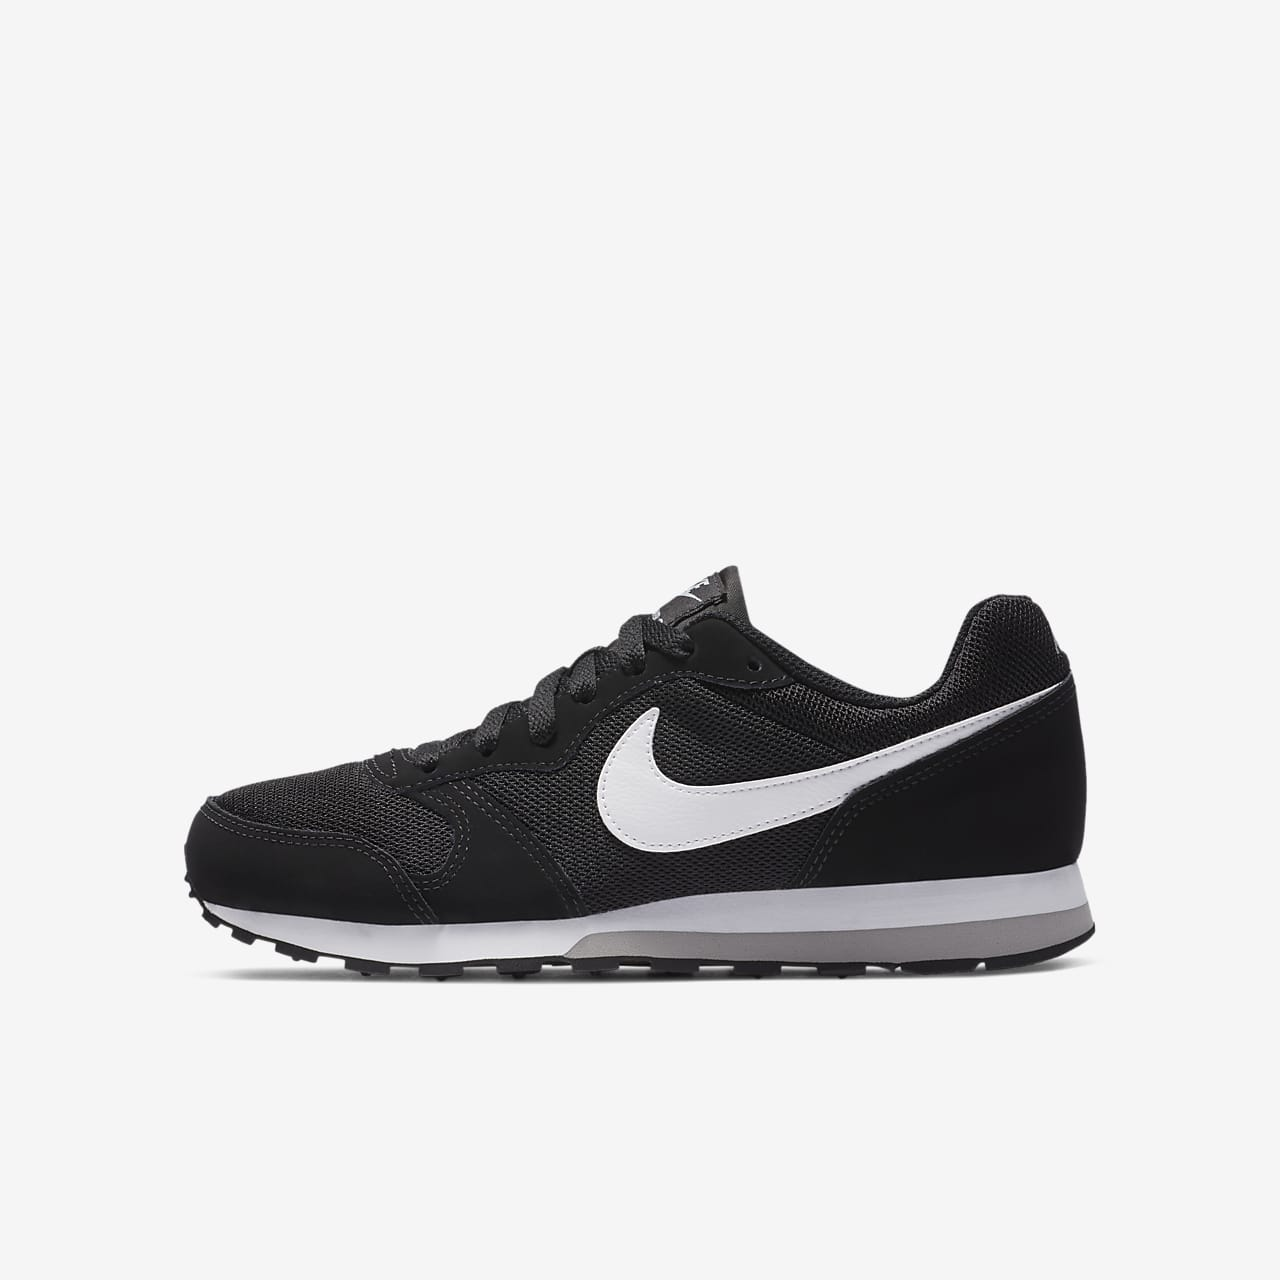 Chaussures Nike MD Runner blanches Casual homme fpkANfu